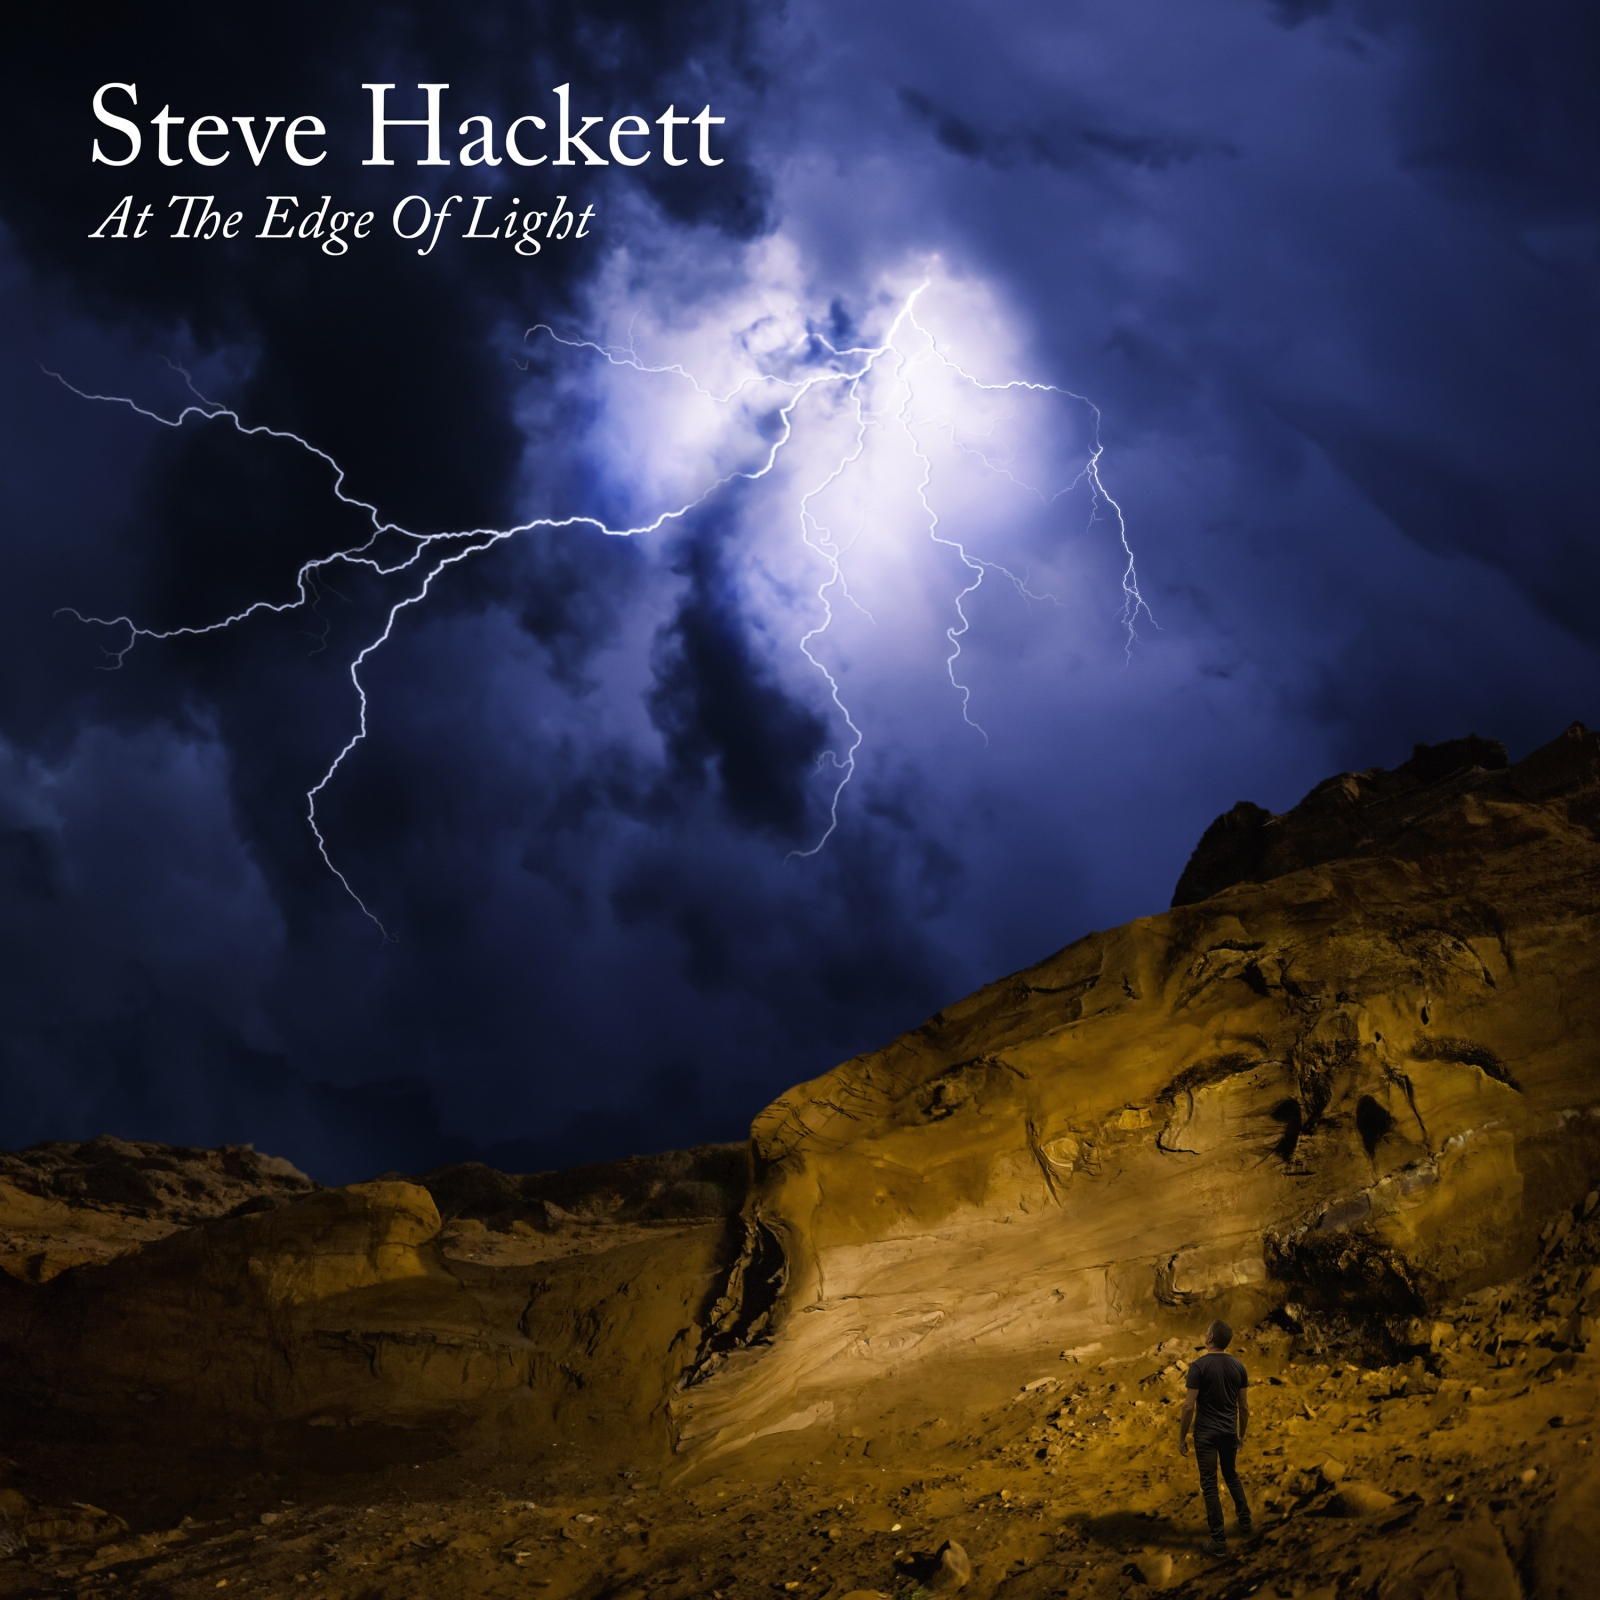 809)Steve Hackett - At The Edge Of Light (180g 2LP+CD) 2019